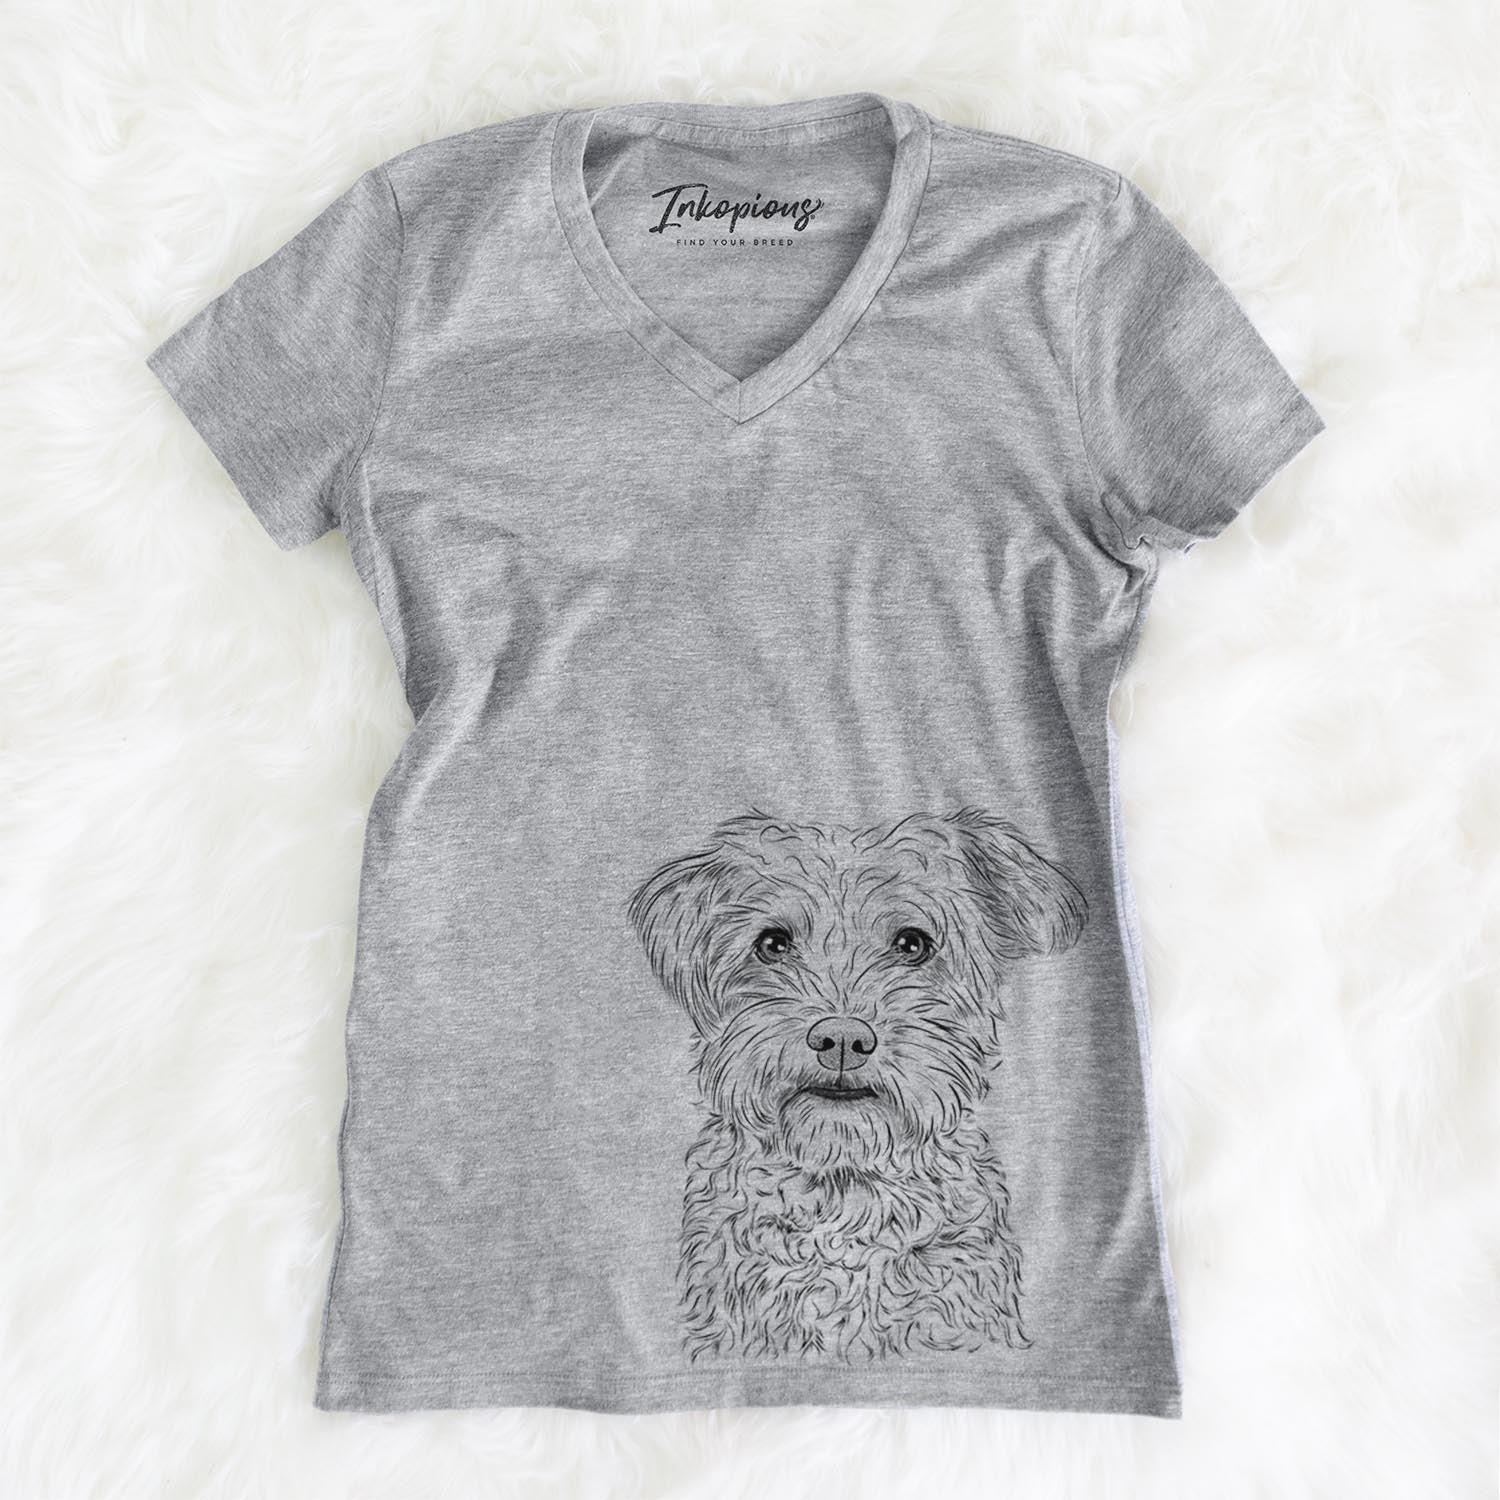 Rudy the Schnoodle - Women's Modern Fit V-neck Shirt